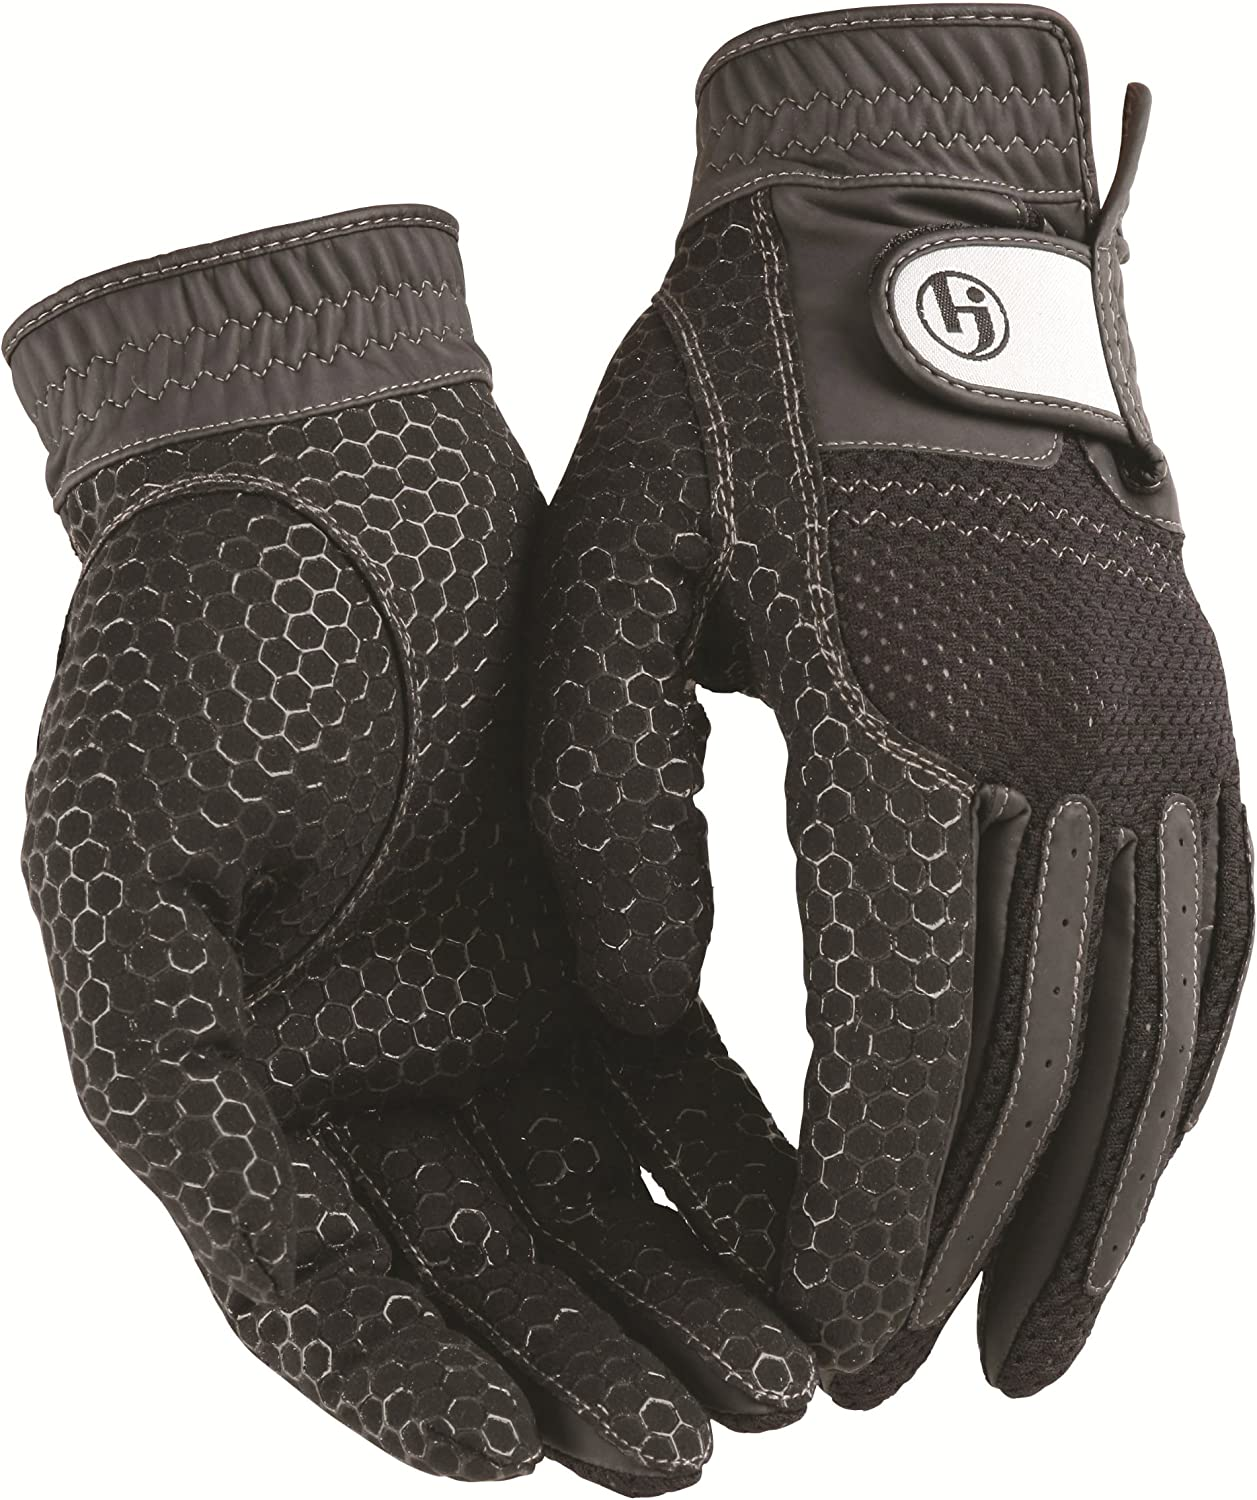 HJ Glove Weather Golf Rain Direct sale of manufacturer Selling and selling Ready